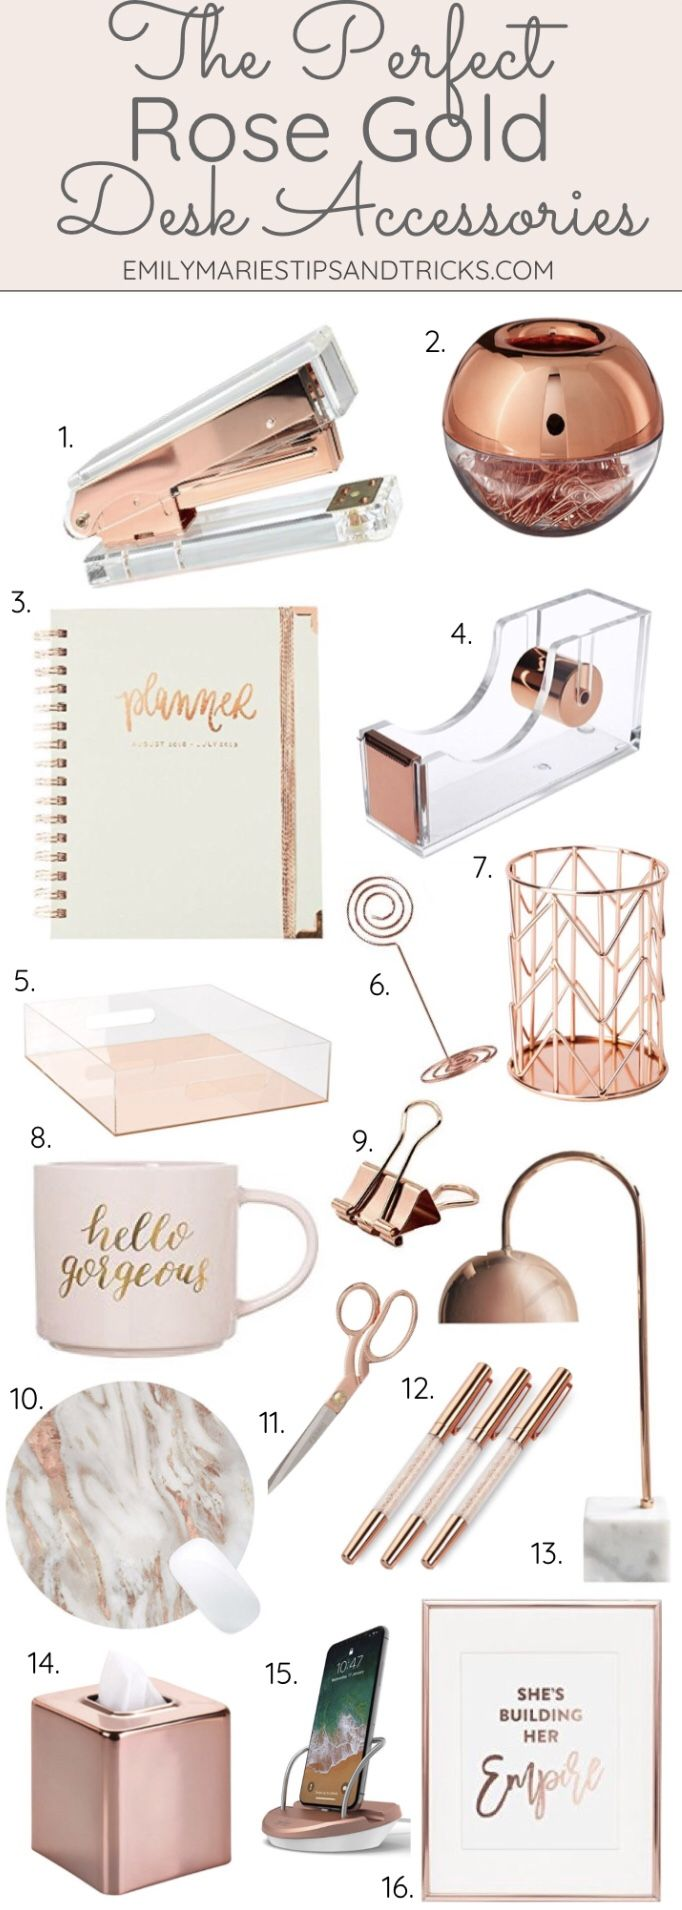 Rose Gold Desk Accessories | emilymariestipsandtricks.com